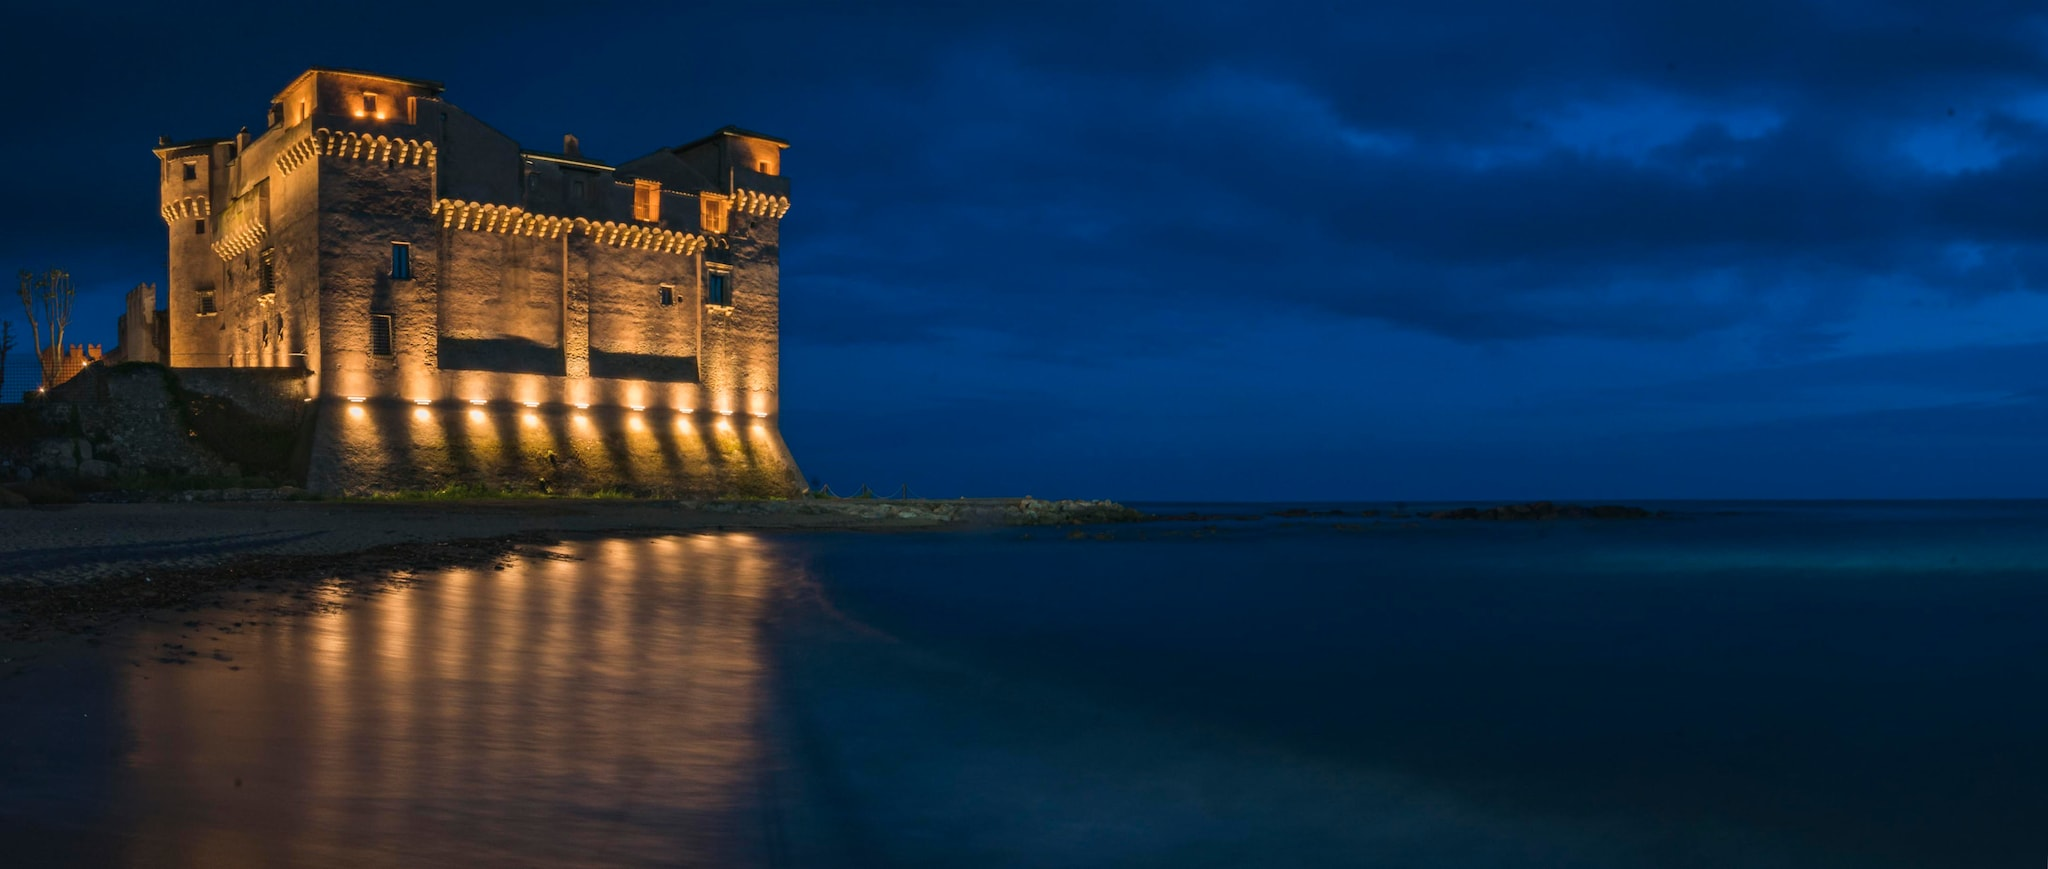 #10. Castello di Santa Severa, Santa Marinella, Italy: Want to stay in a medieval castle for less than $50 per night? Look no further than this 14th-century beachside citadel, which now functions as a hostel. The site—a short train ride from Rome—touts more than 2,000 years of fascinating history, with owners that ranged from the Catholic Church to Roman aristocracy. After four years of restoration, the castle and its adjacent buildings now function as a museum complex and hostel that sleeps 42. (Image: Stock)